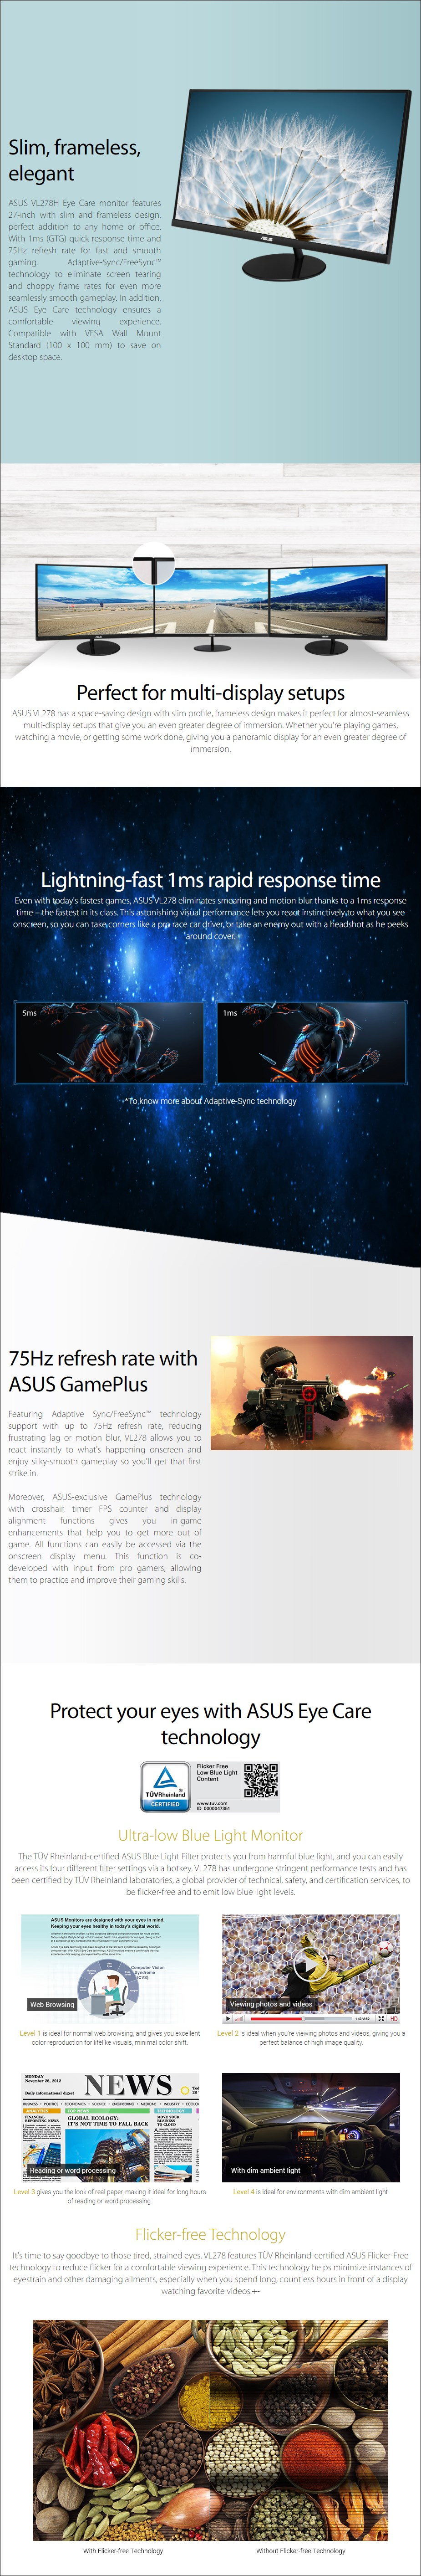 asus-vl278h-27-75hz-full-hd-1ms-freesync-eye-care-tn-monitor-ac27425-5.jpg